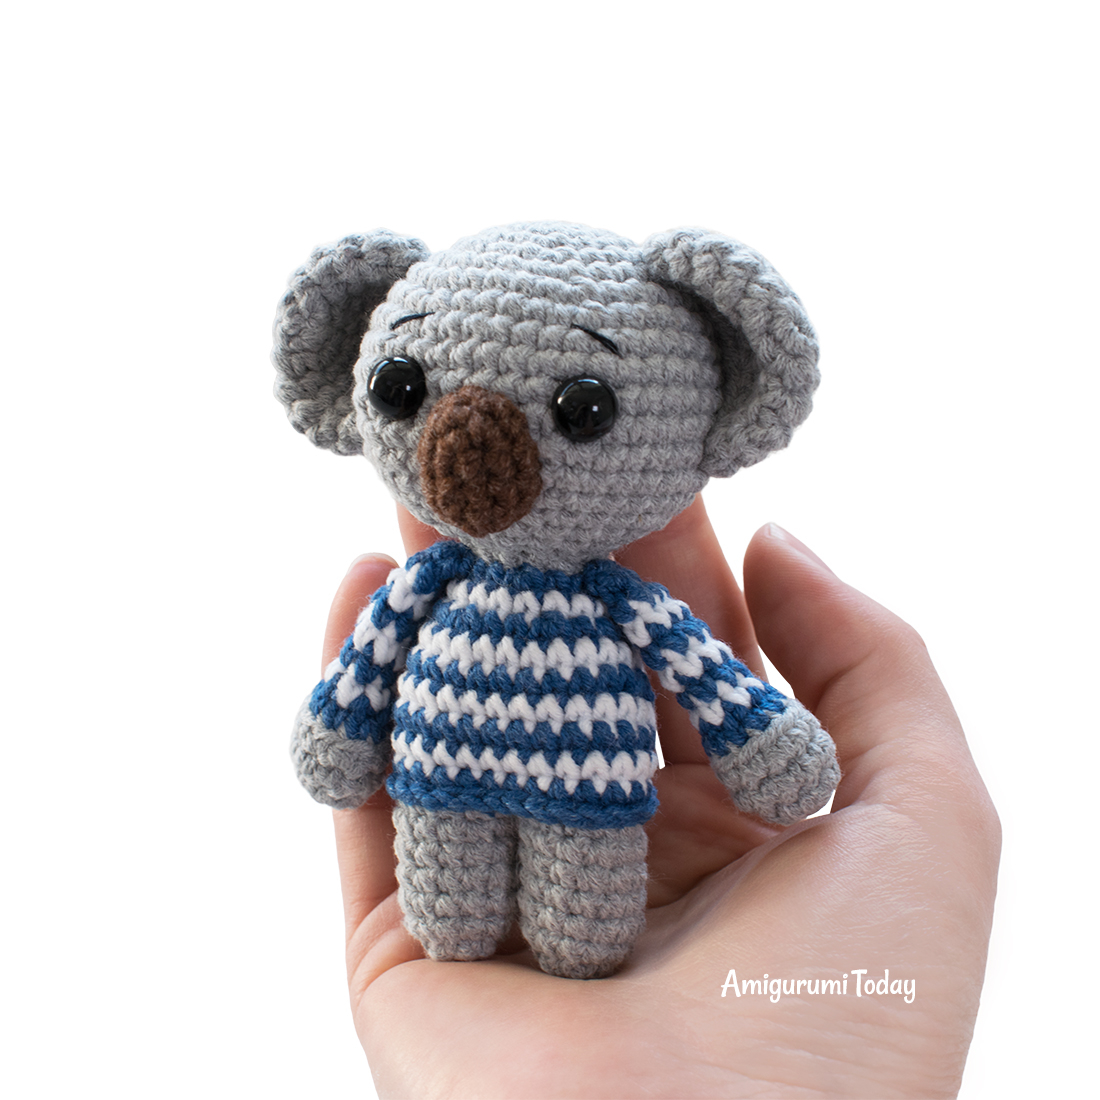 Butterfly baby rattle crochet pattern - Amigurumi Today | 1100x1100